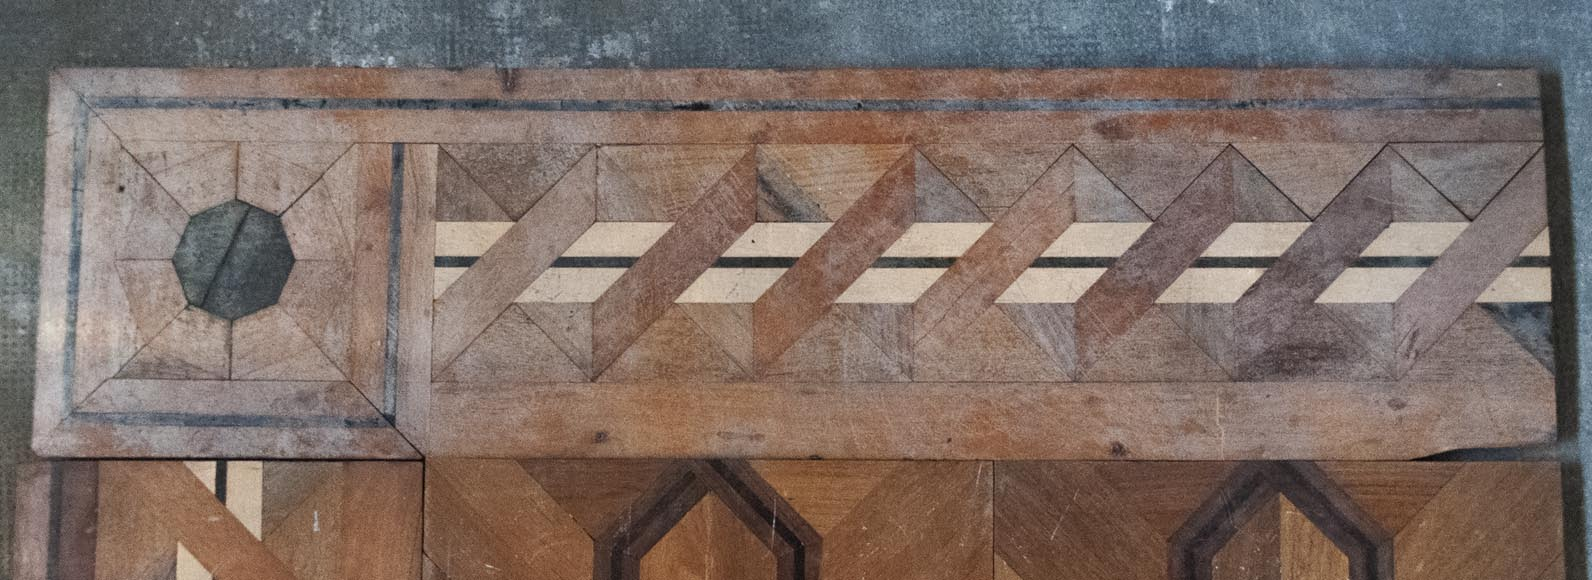 Old Napoleon III style parquet flooring, made of marquetry of different wood species-2